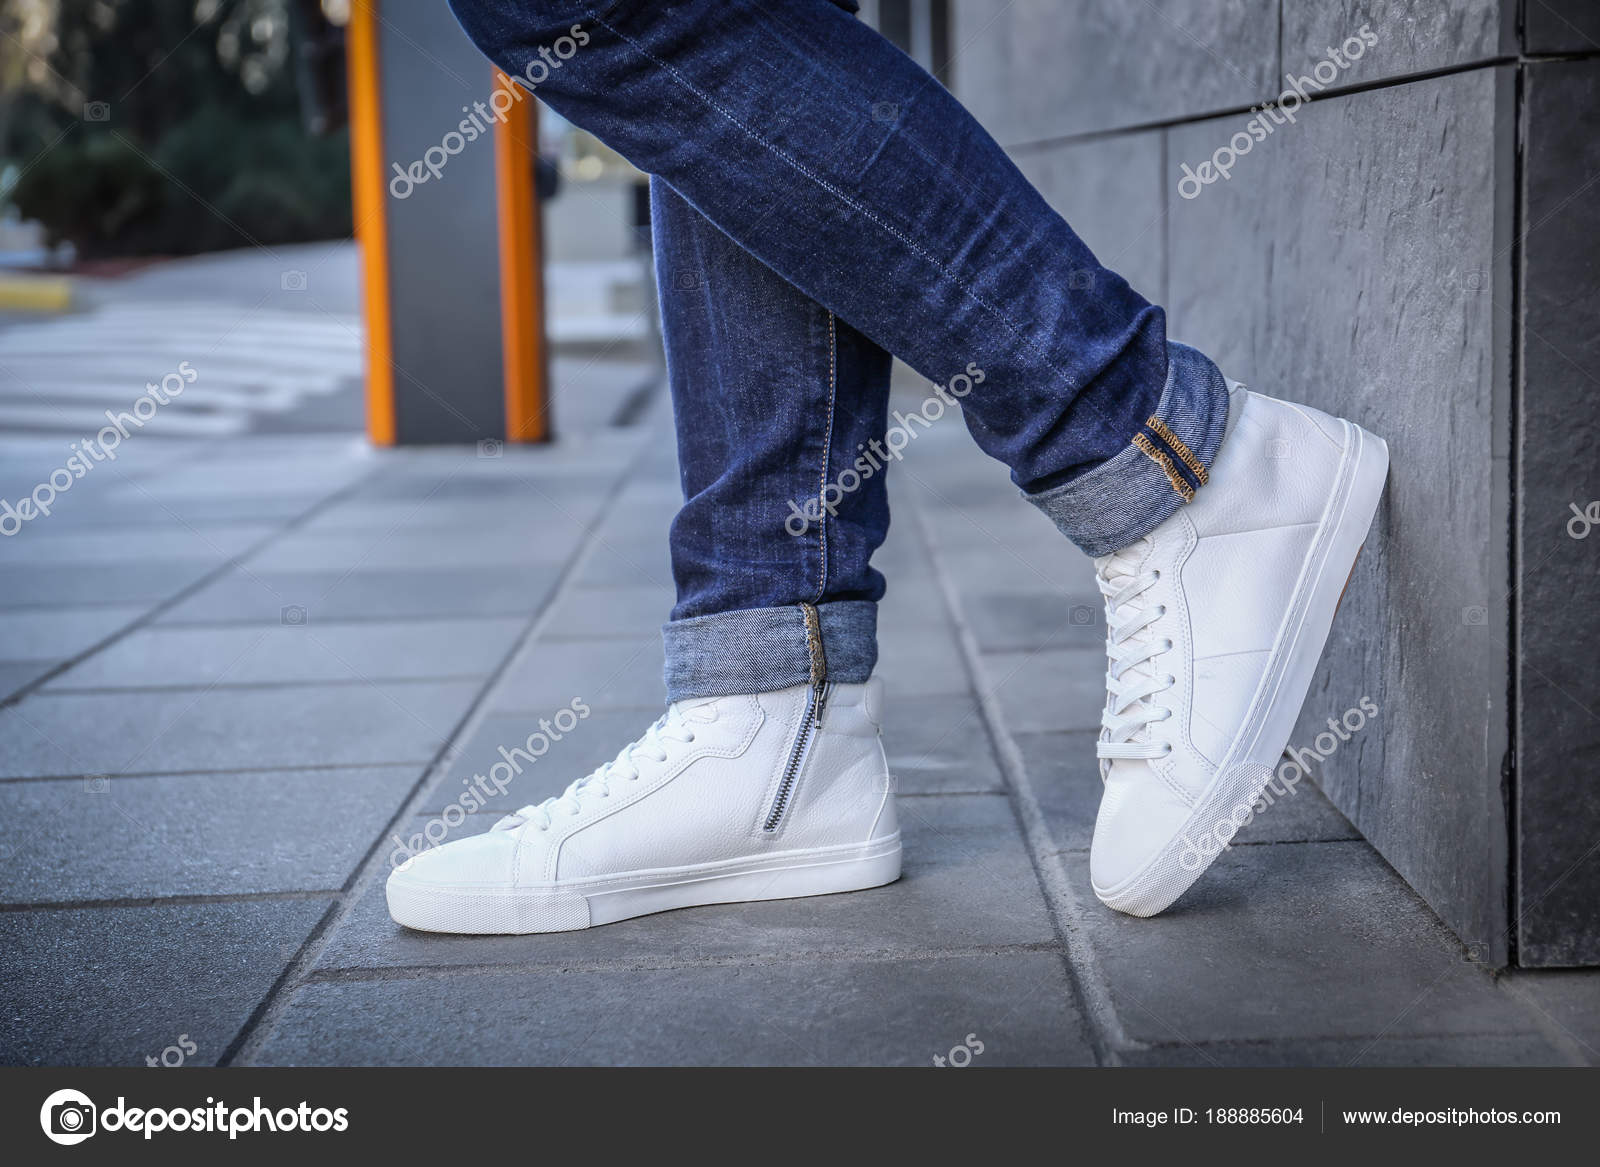 Stylish man in white shoes on city